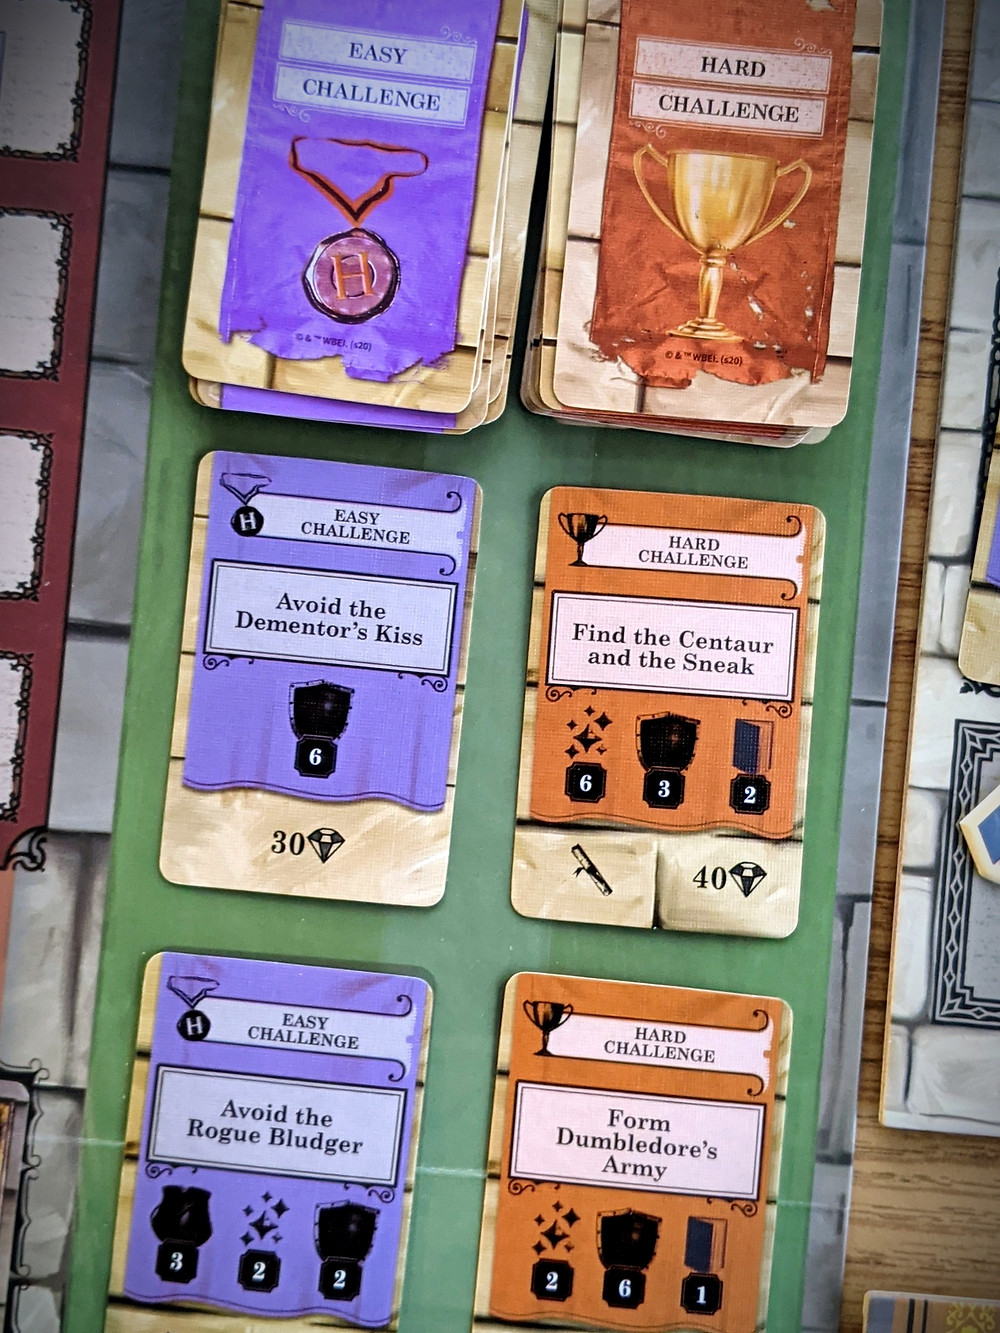 Harry Potter House Cup Championship Challenge Cards